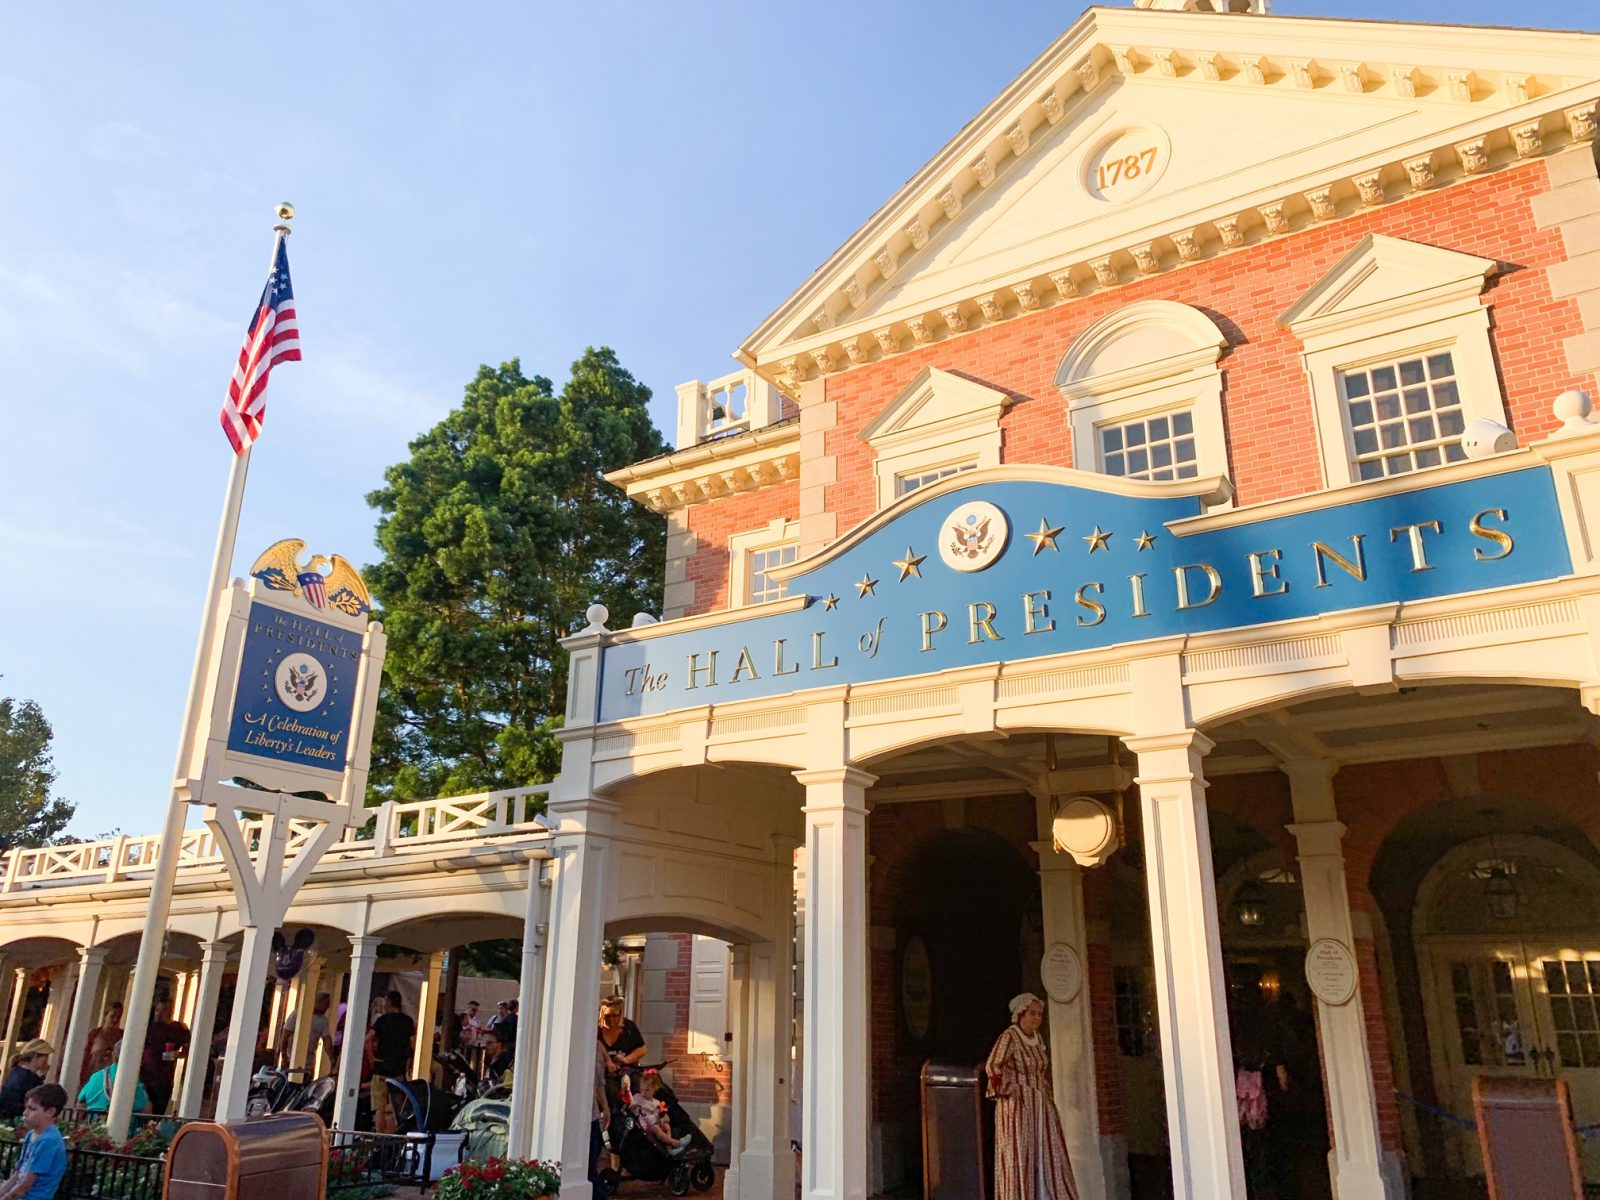 Disney World show hall of presidents